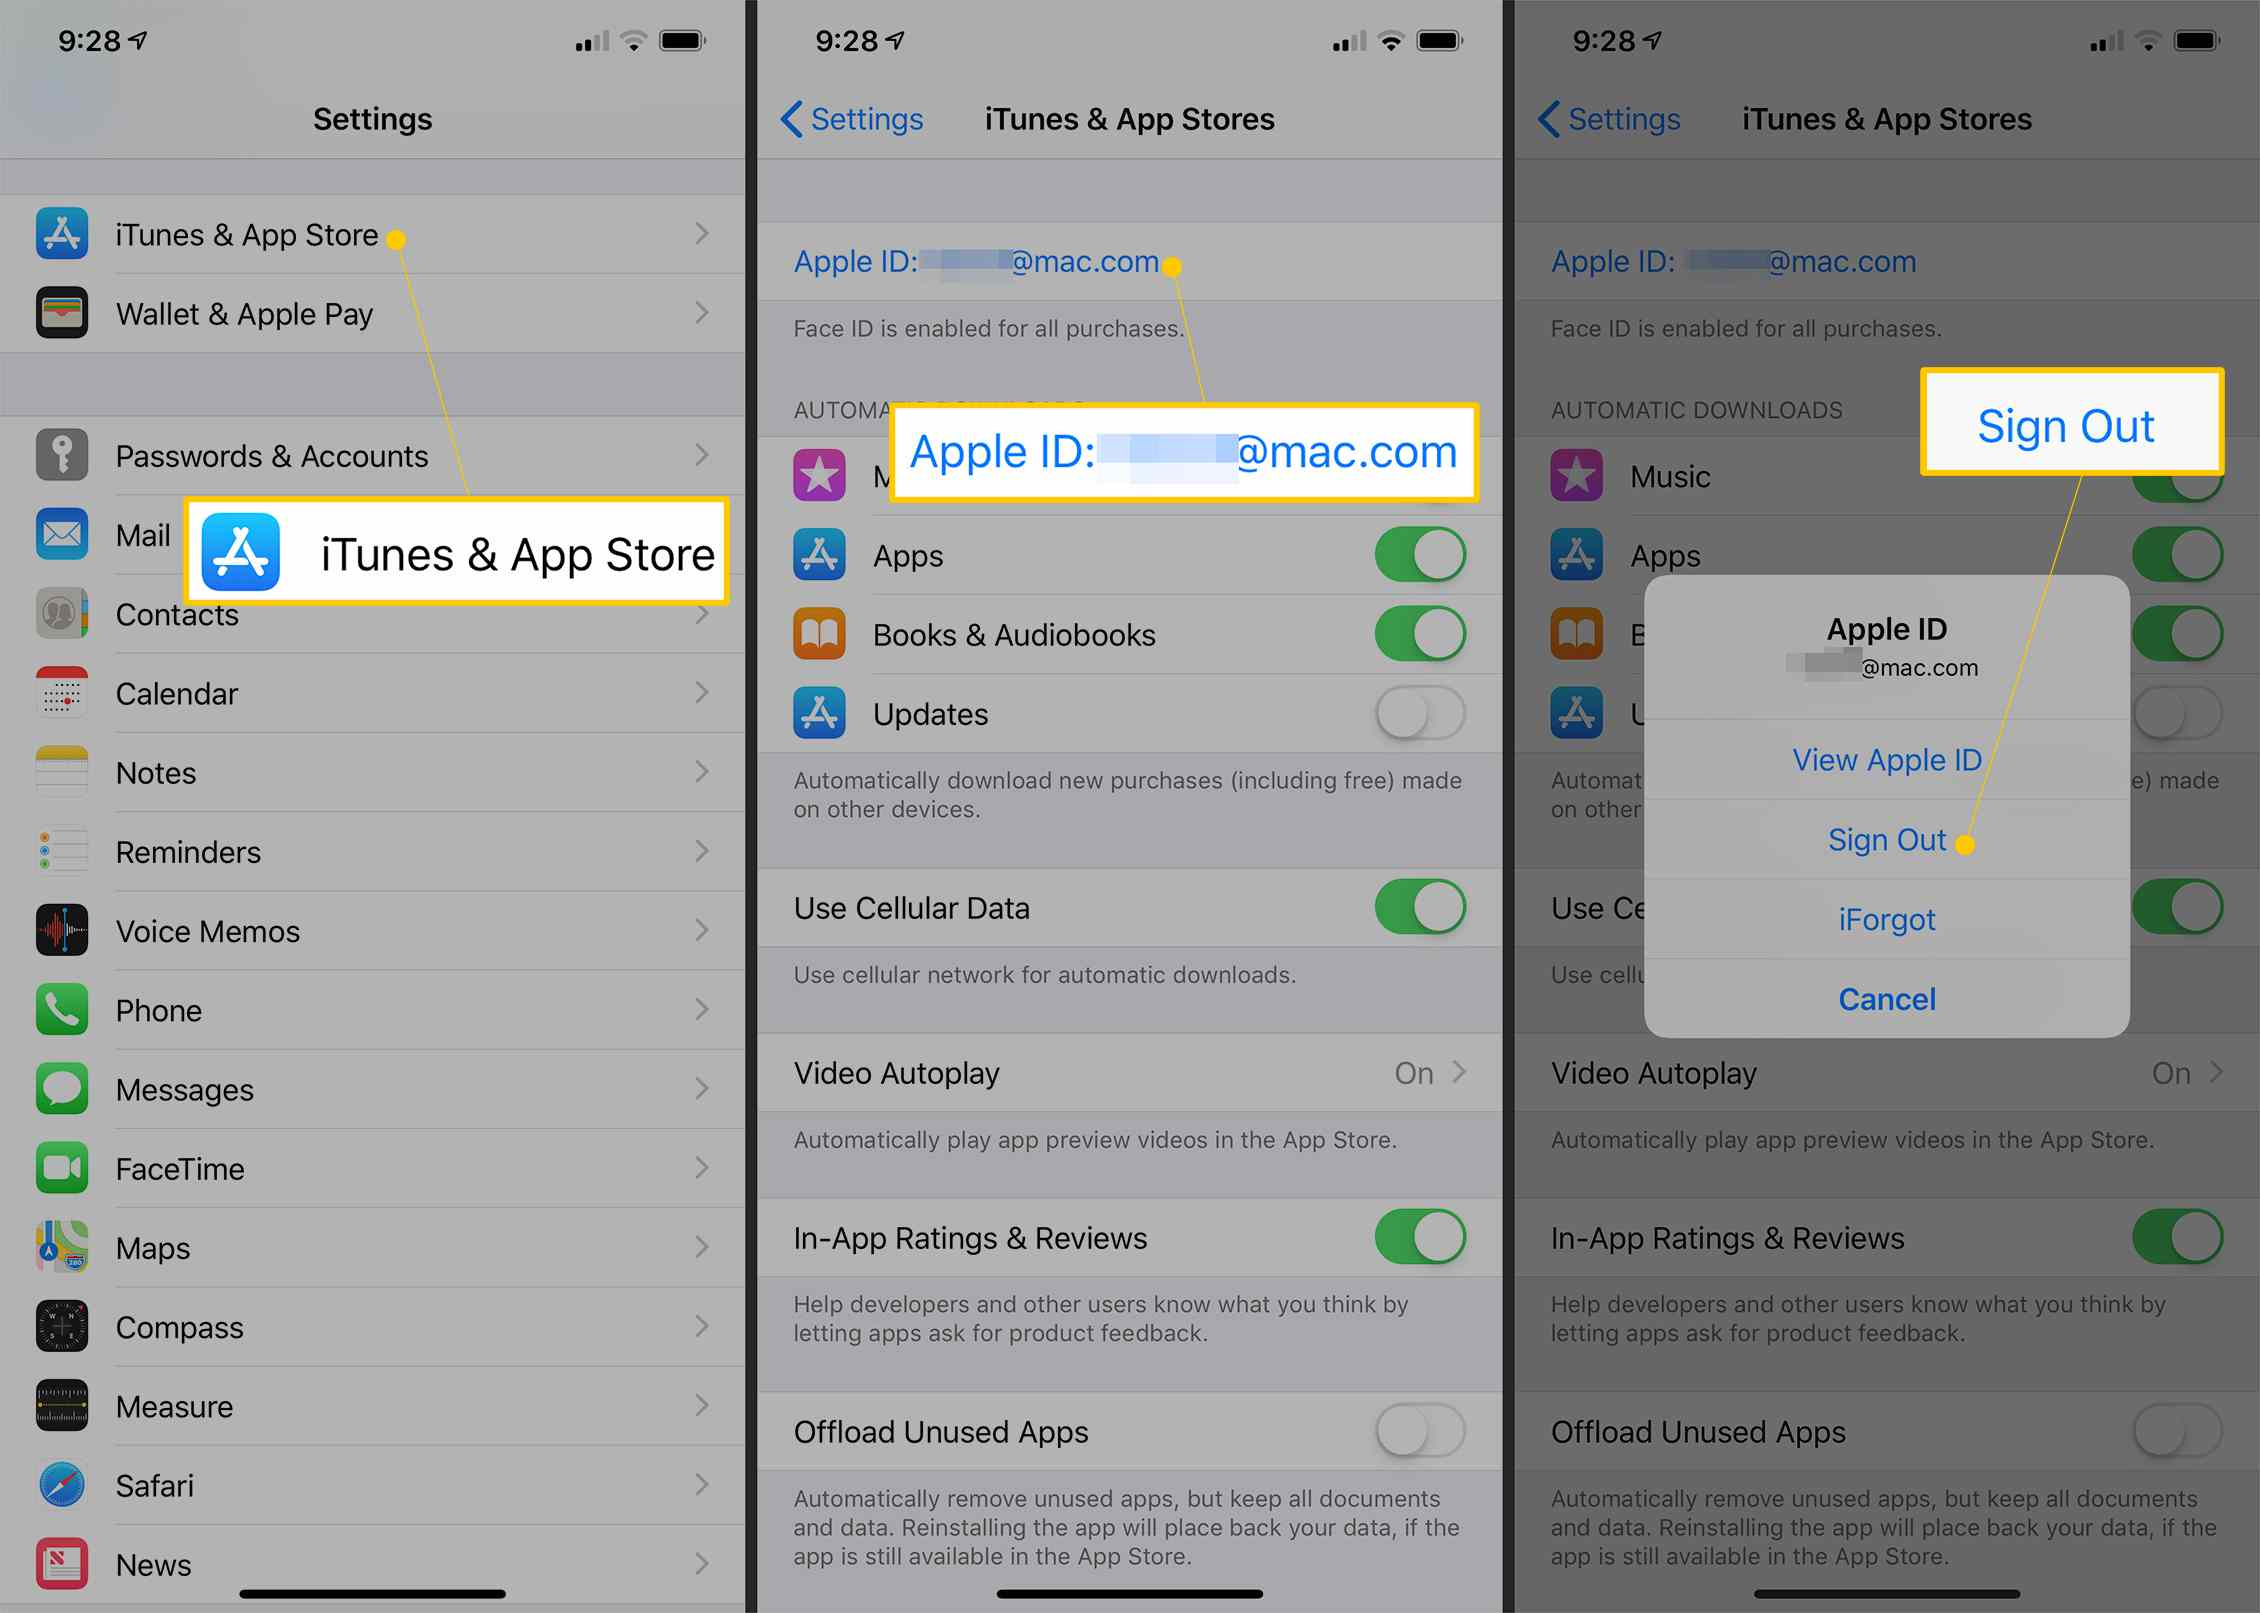 How to Fix an iPhone That Can't Update Apps